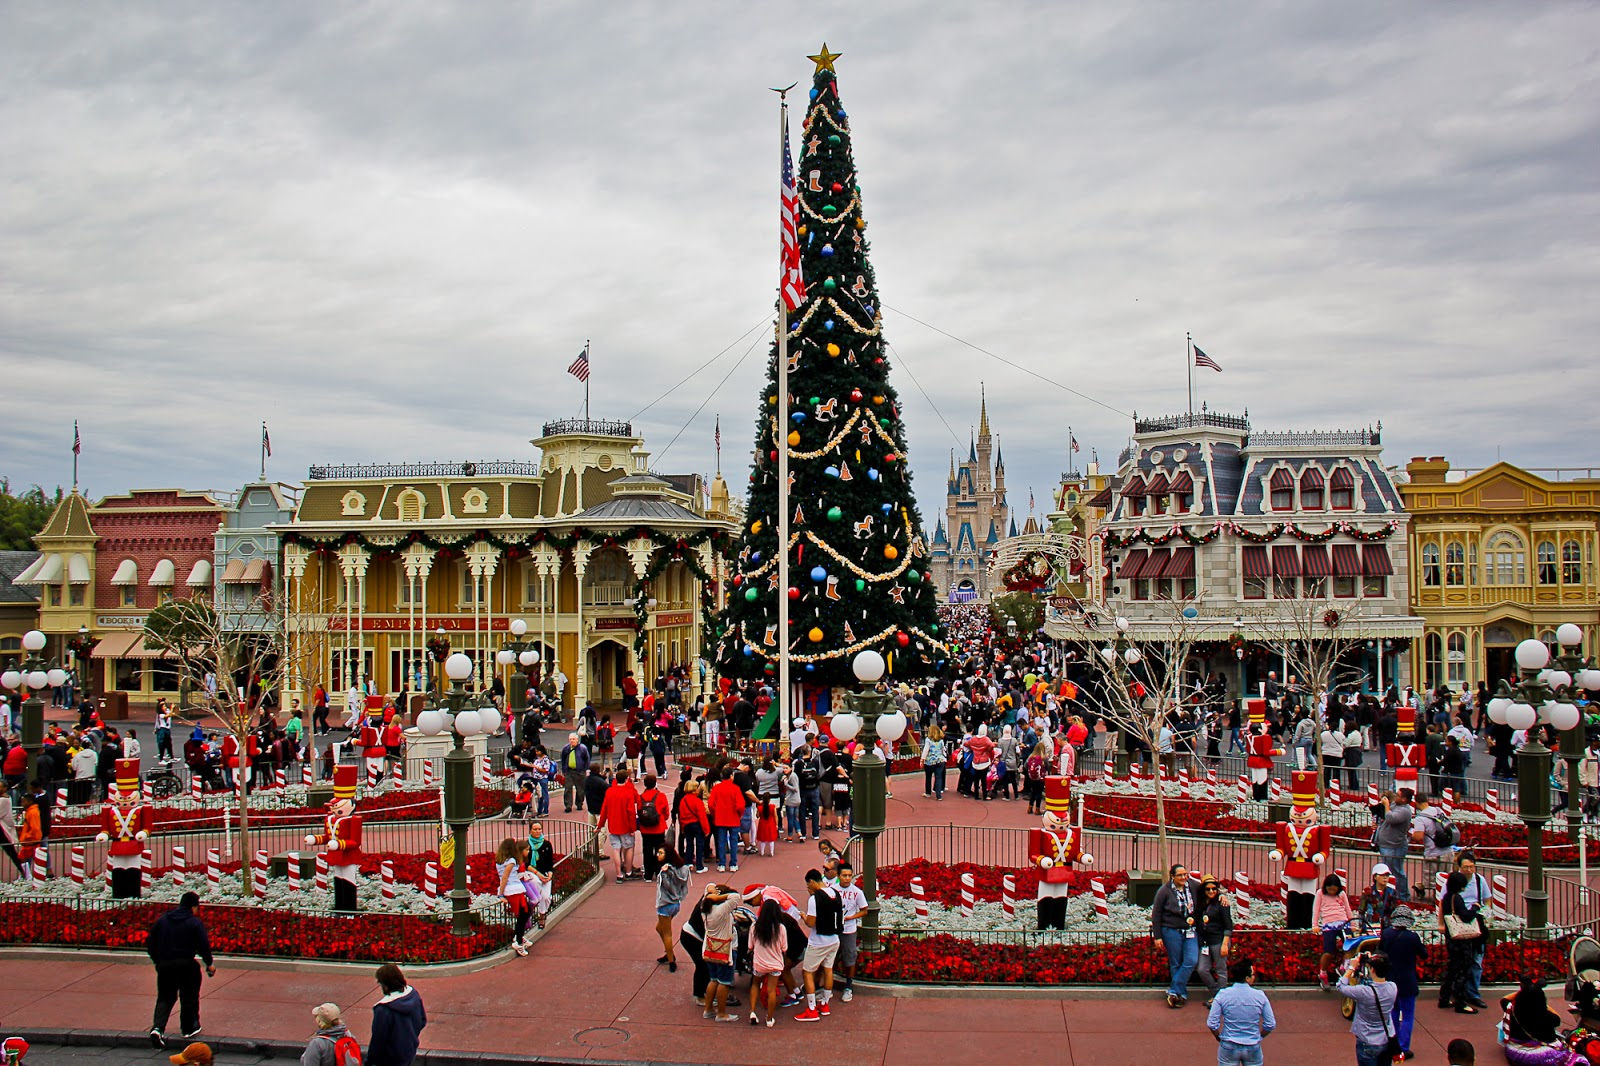 and i am glad that we decided to do this because disney at christmastime truly iswell magical